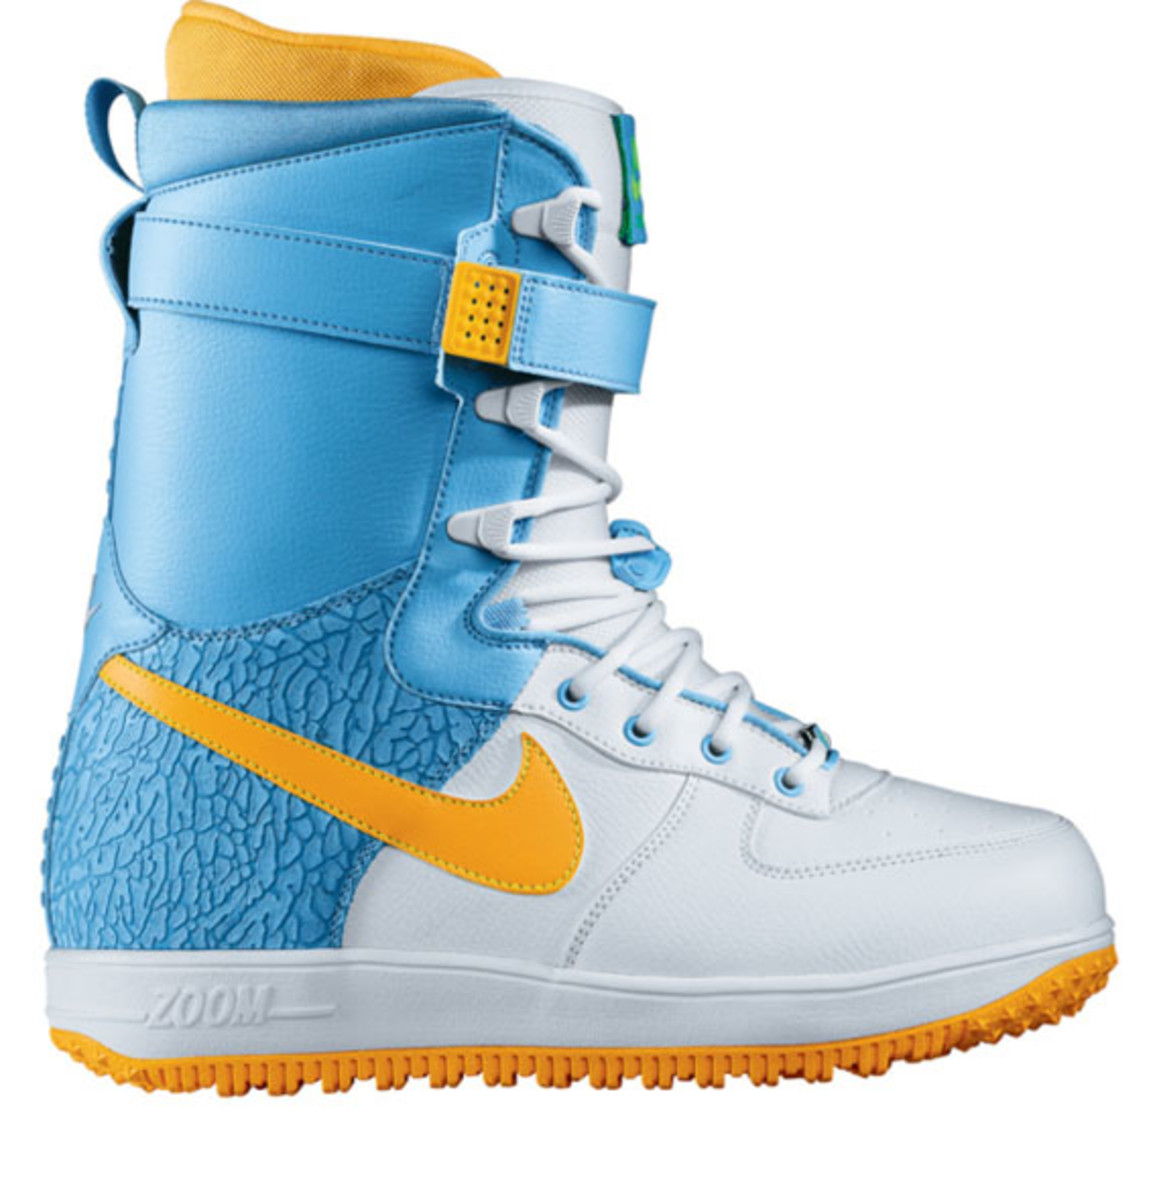 nike-snowboarding-boots-3